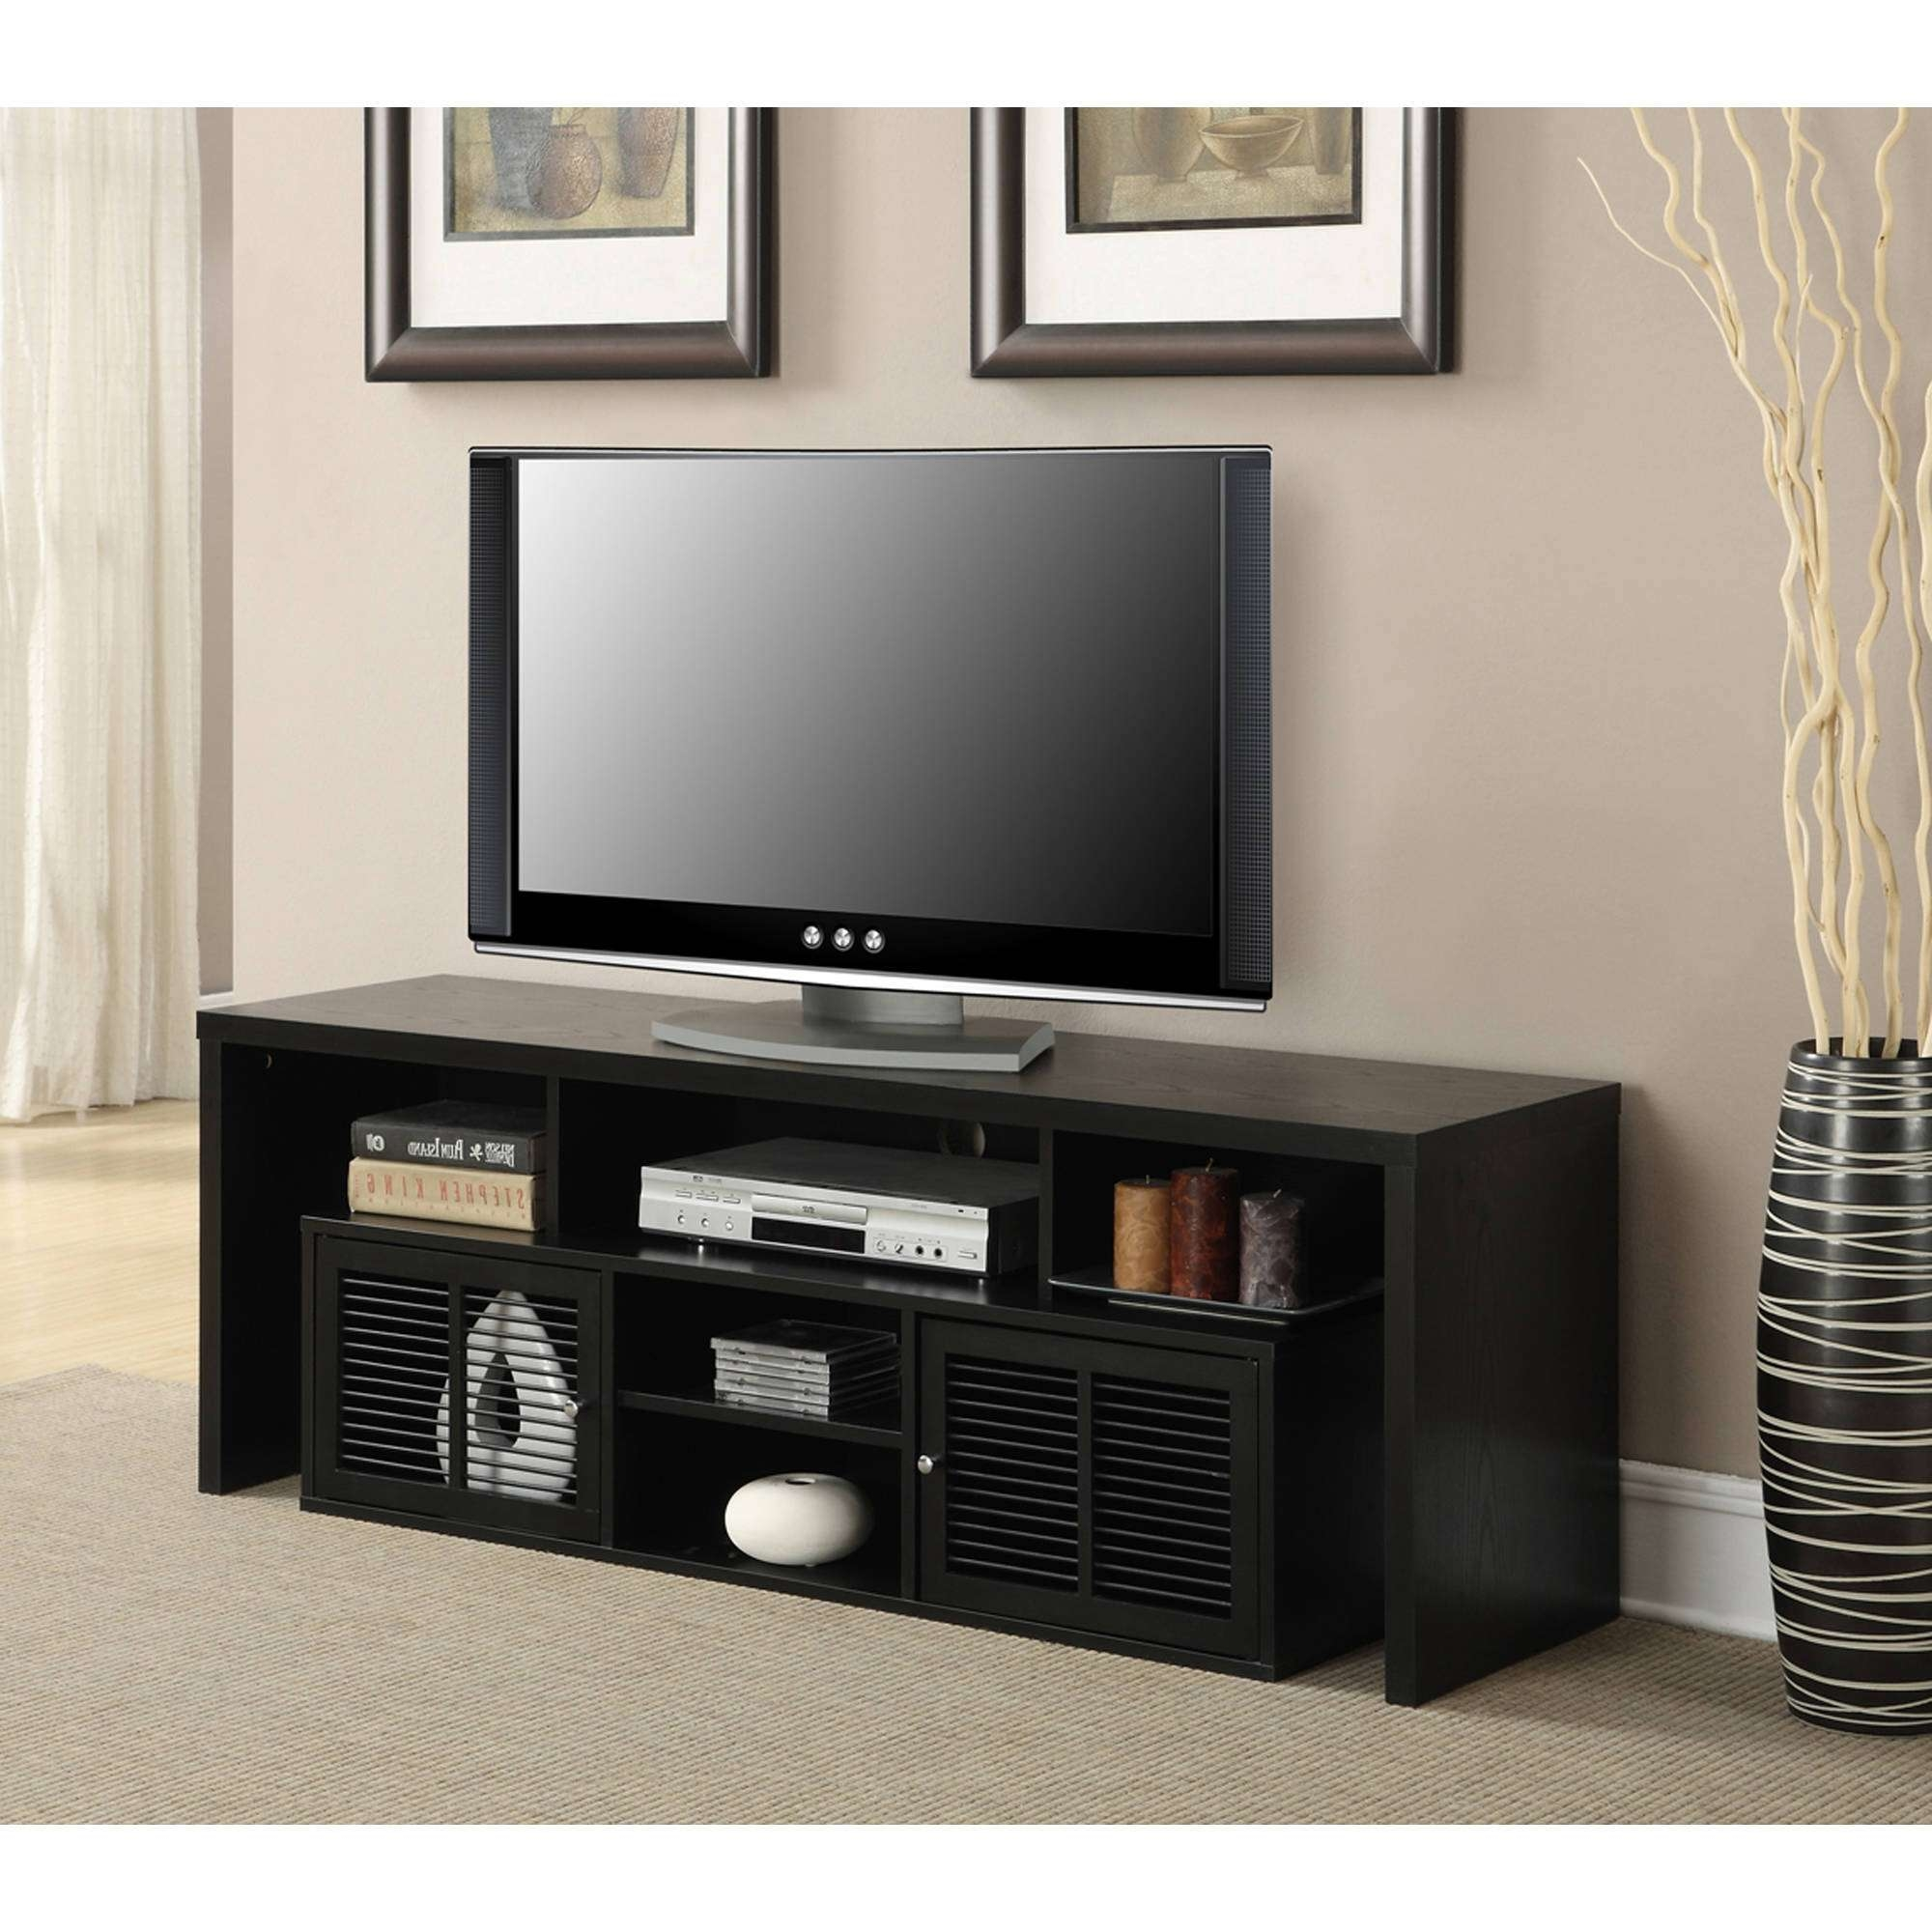 Tv : Home Loft Concept Tv Stands Miraculous Home Loft Concept For Home Loft Concept Tv Stands (View 10 of 15)